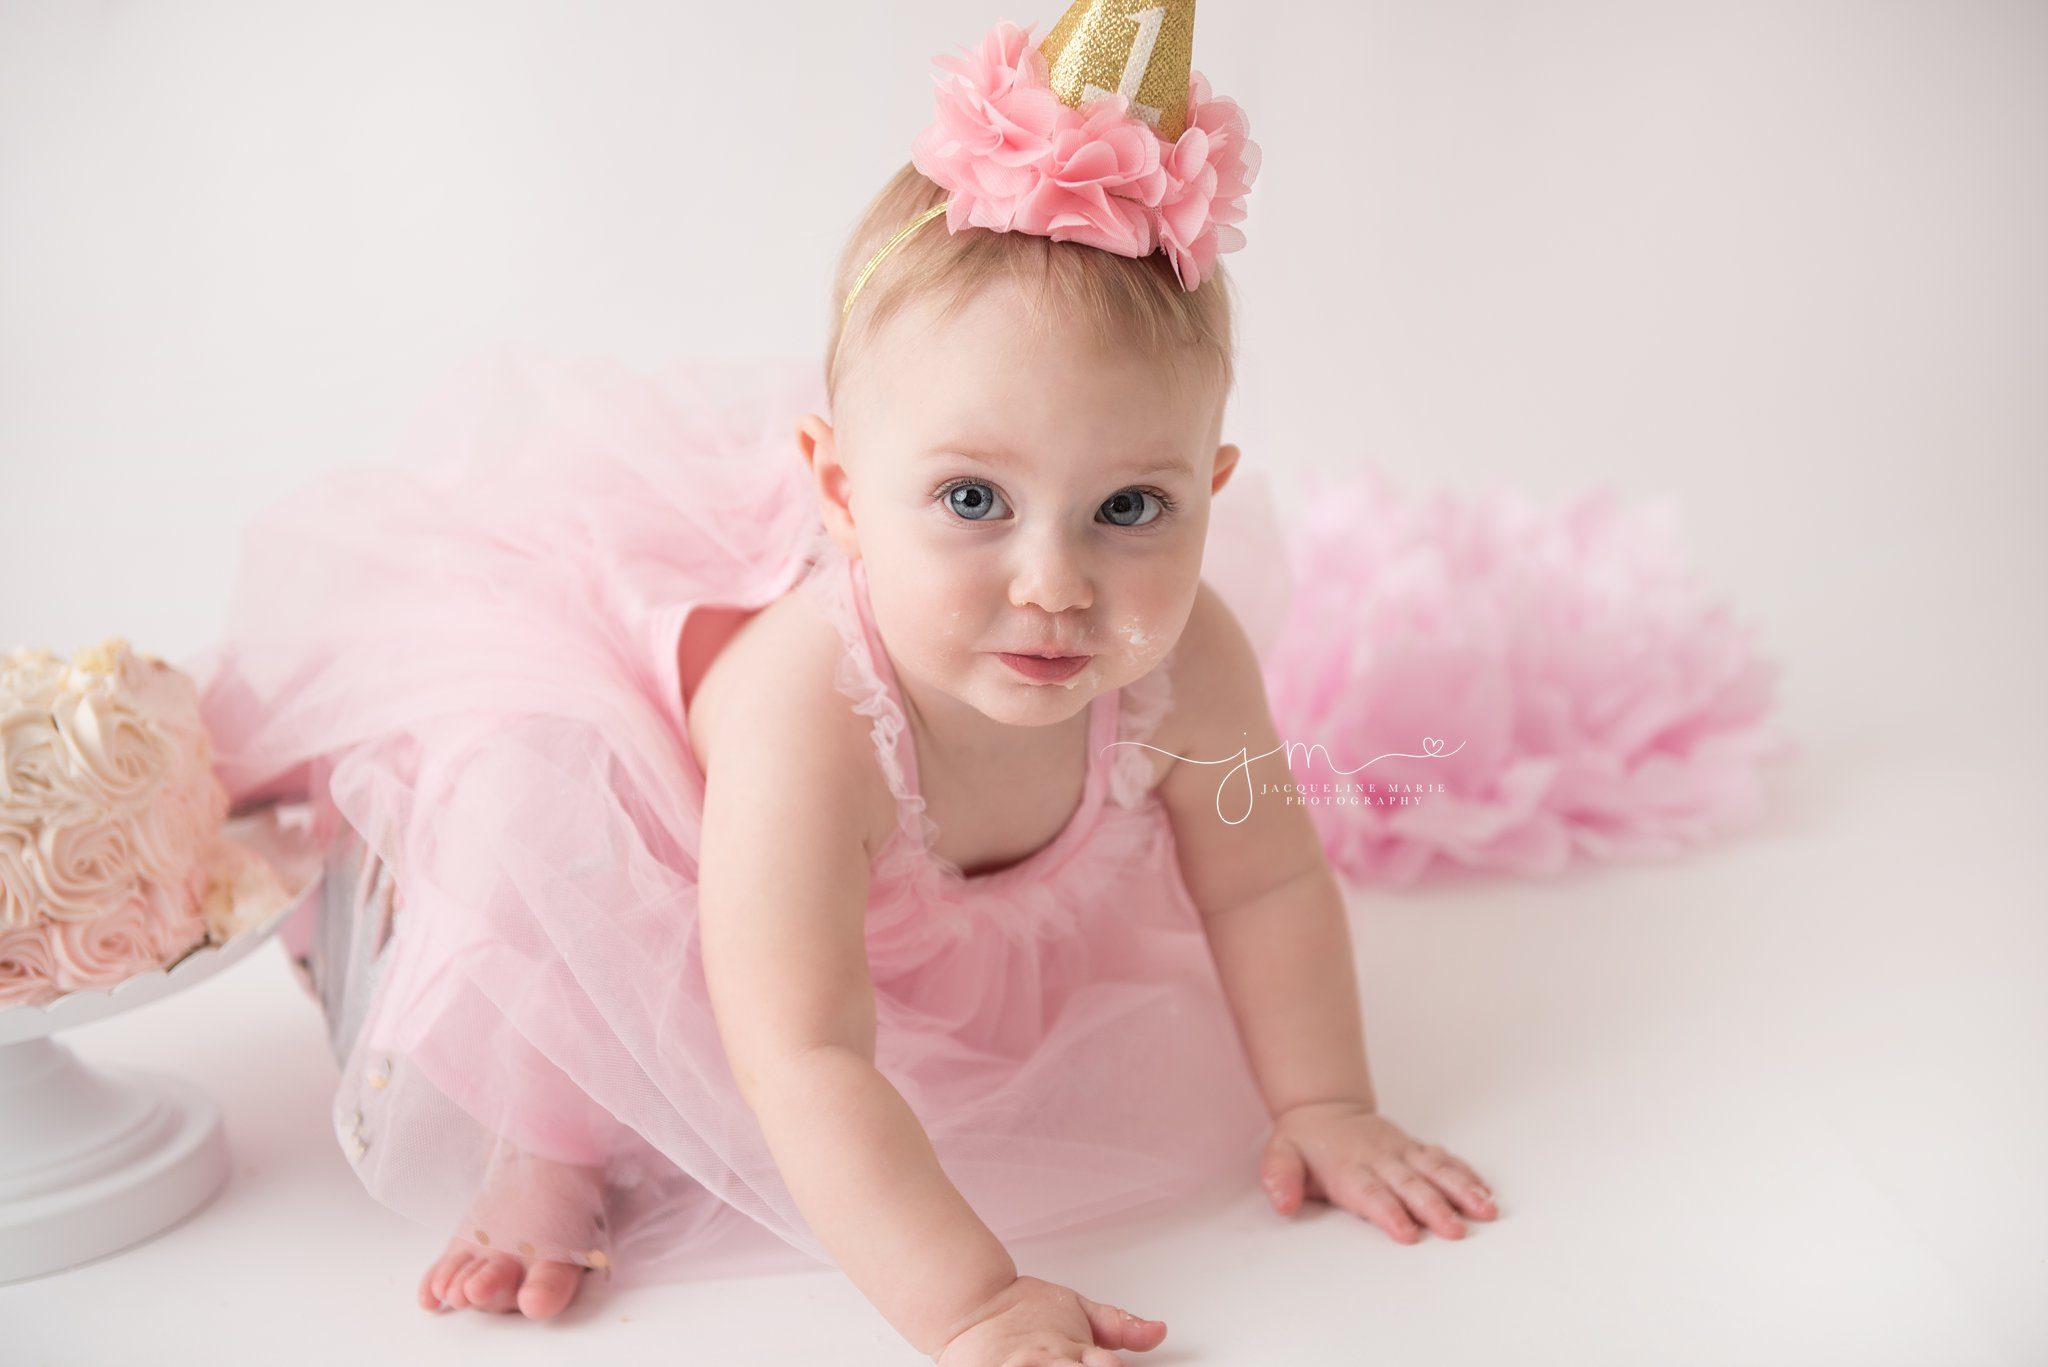 first birthday photographer features baby girl wearing pink dress and gold hat for cake smash pictures in columbus ohio